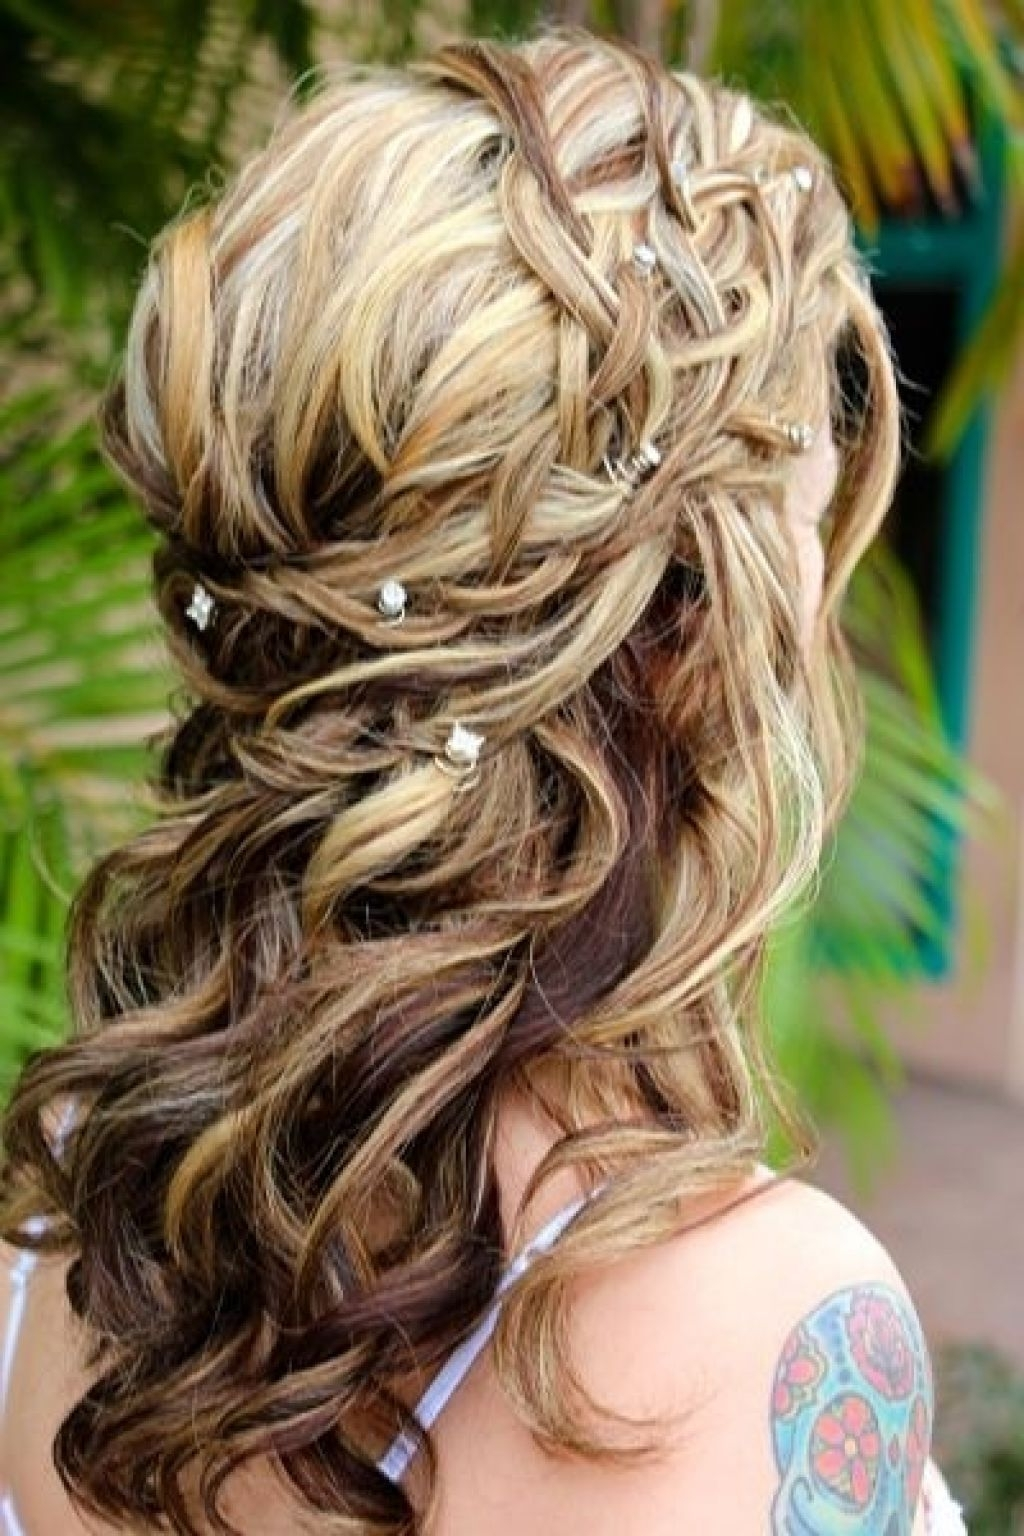 Most Popular Wedding Hairstyles For Shoulder Length Hair With Veil With Regard To Wedding Hairstyles Half Up Down With Flowers Haircutsboy Shoulder (View 12 of 15)